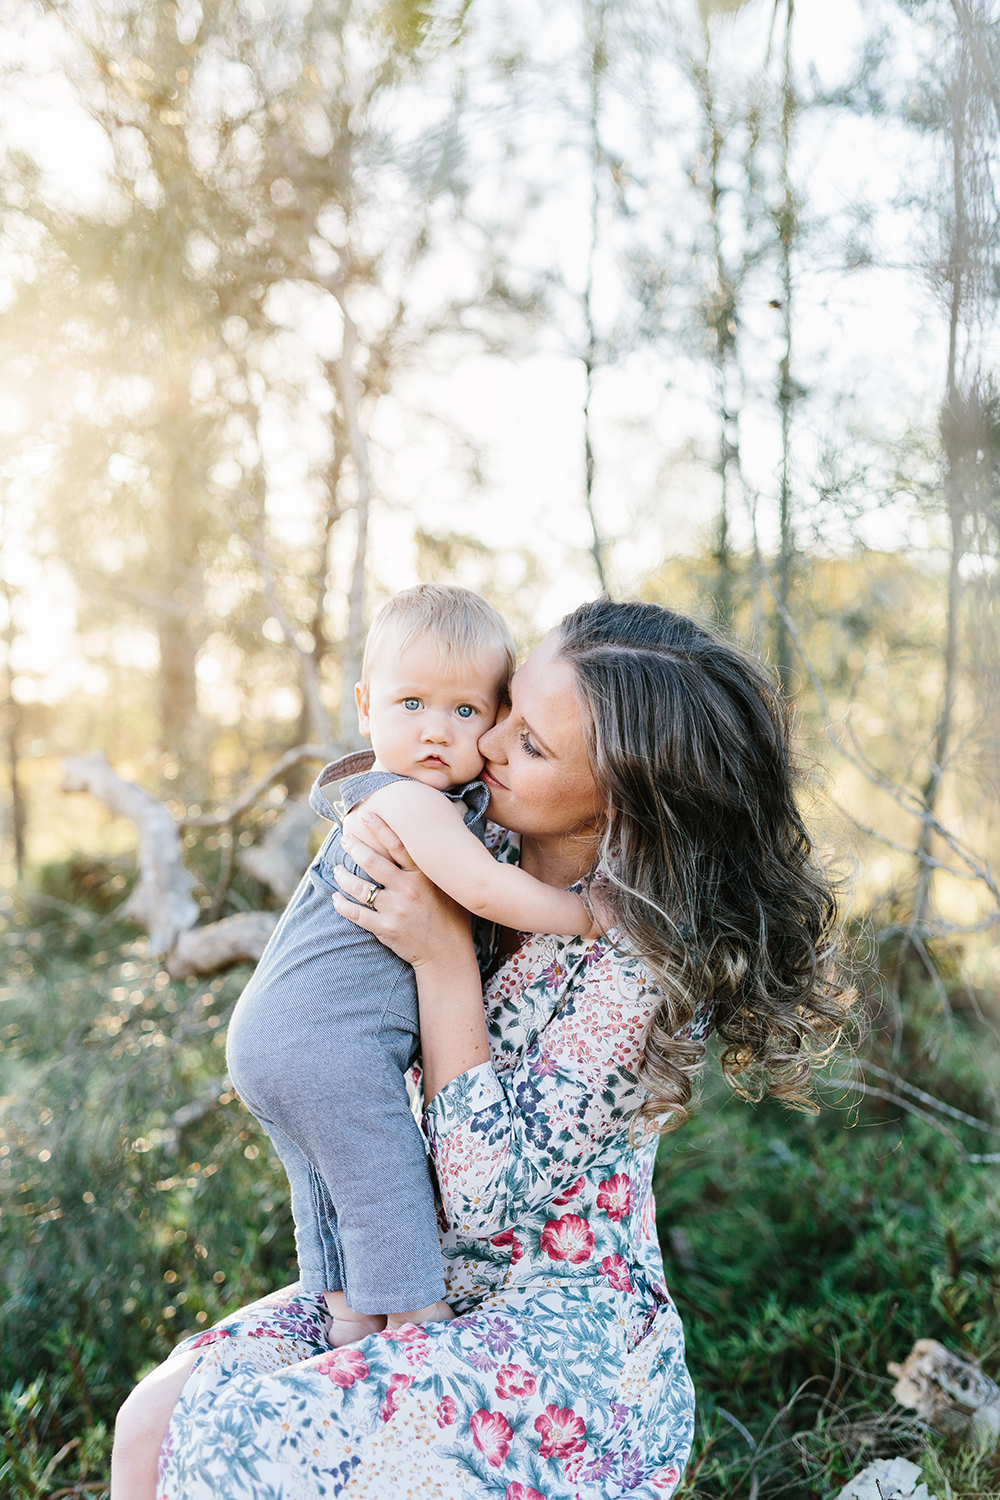 Mother and Son.  Photography by Britt Spring - Family Photographer Brisbane Australia